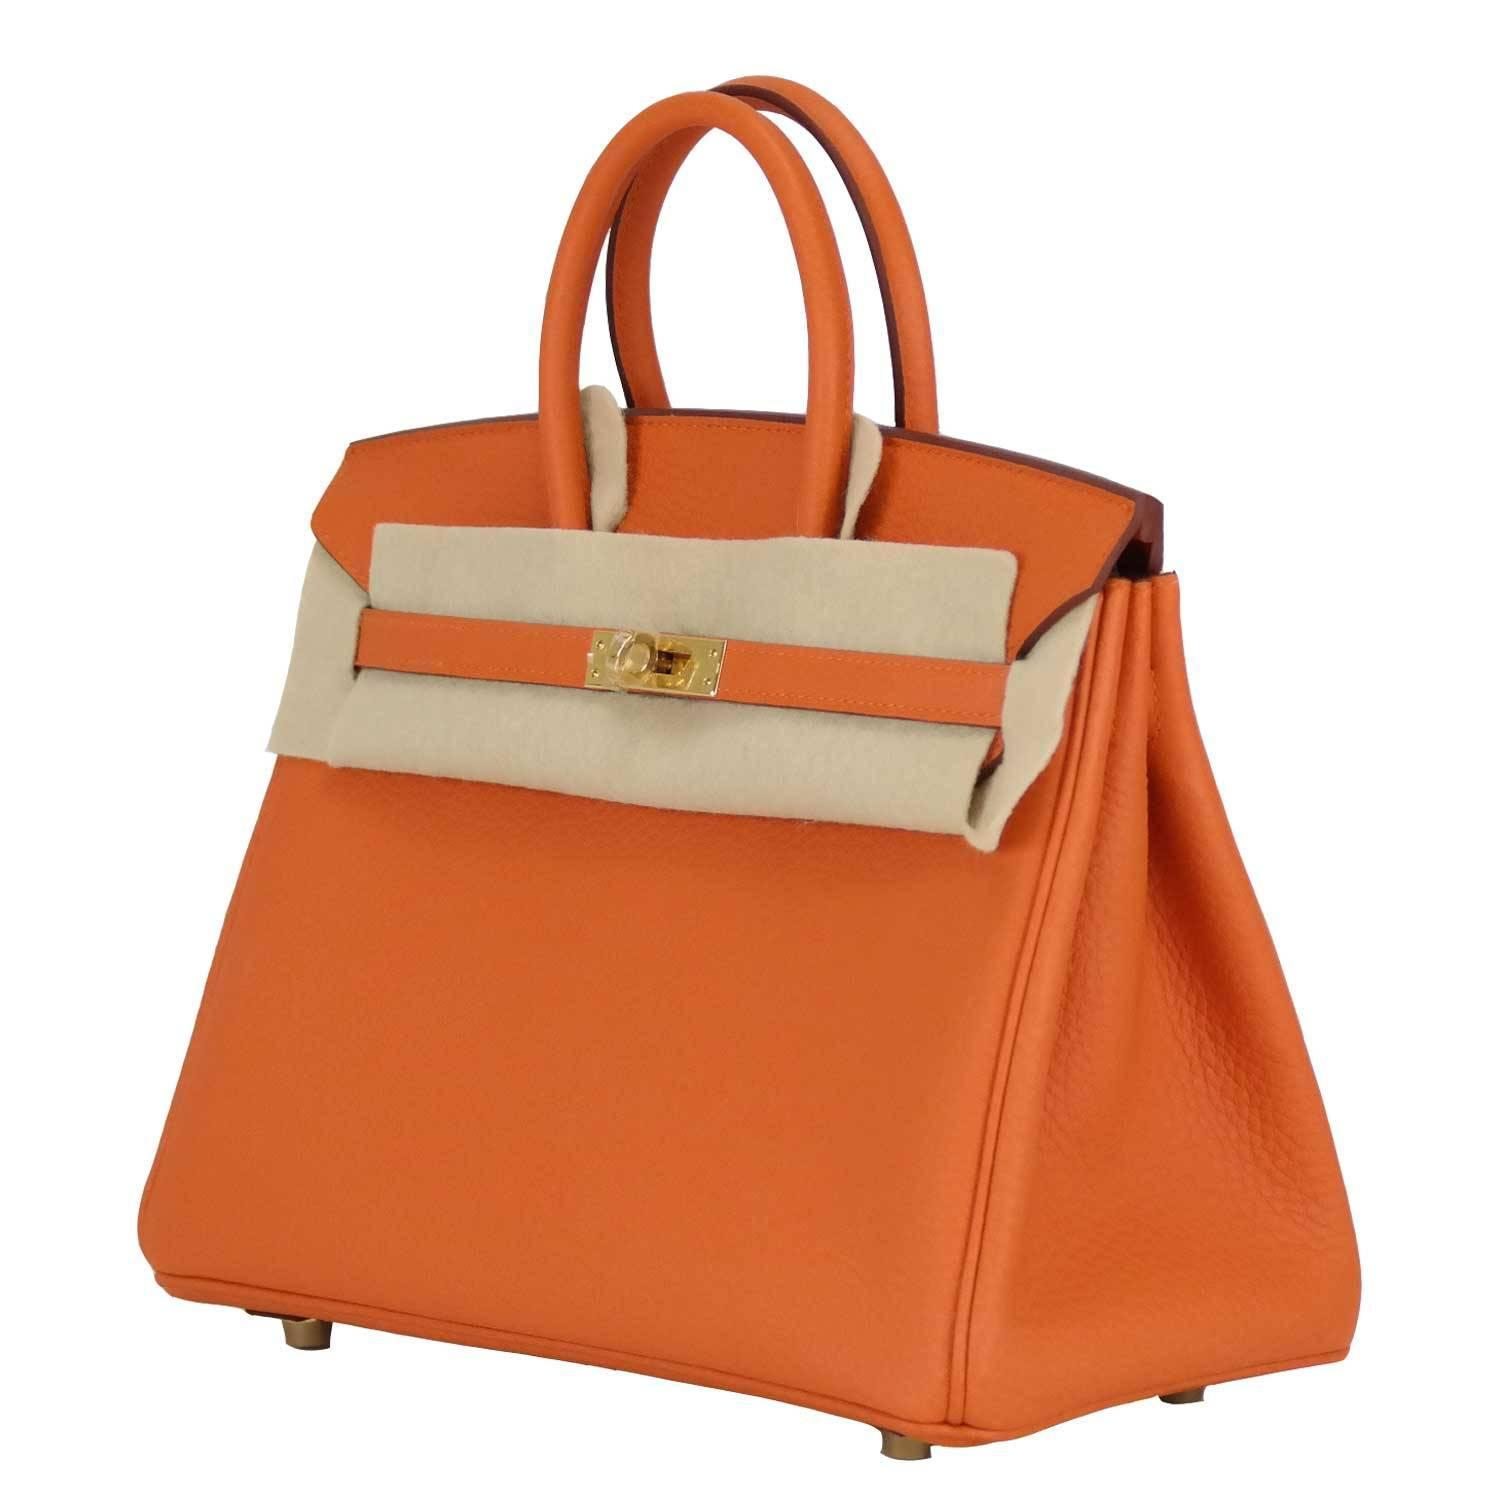 h hermes purses - Hermes Birkin 25 Togo 93 Orange Gold Hardware 2016 at 1stdibs